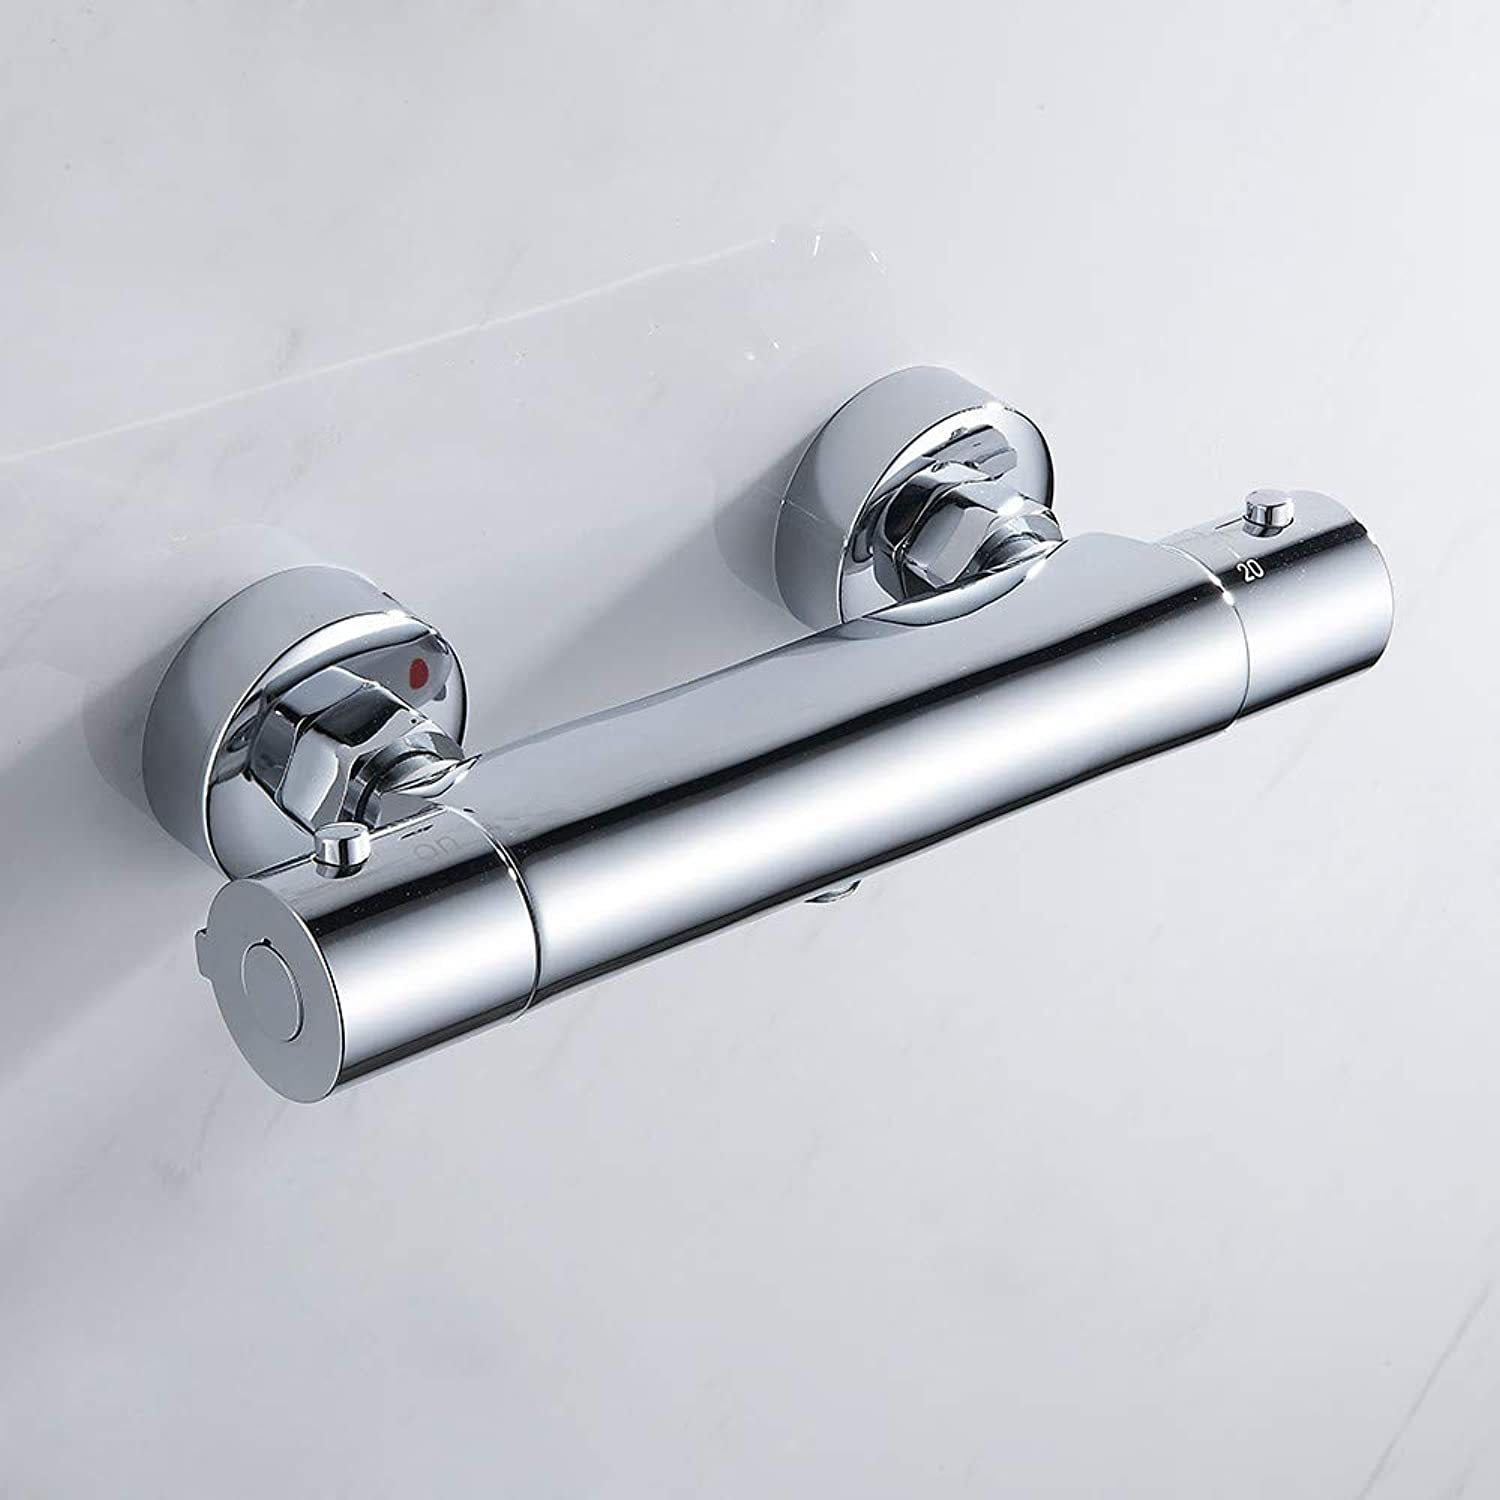 LIUFENG Bathroom Shower Faucet Set Waterfall Shower Faucets Thermostatic Mixing Valve Thermostatic Shower Mixer